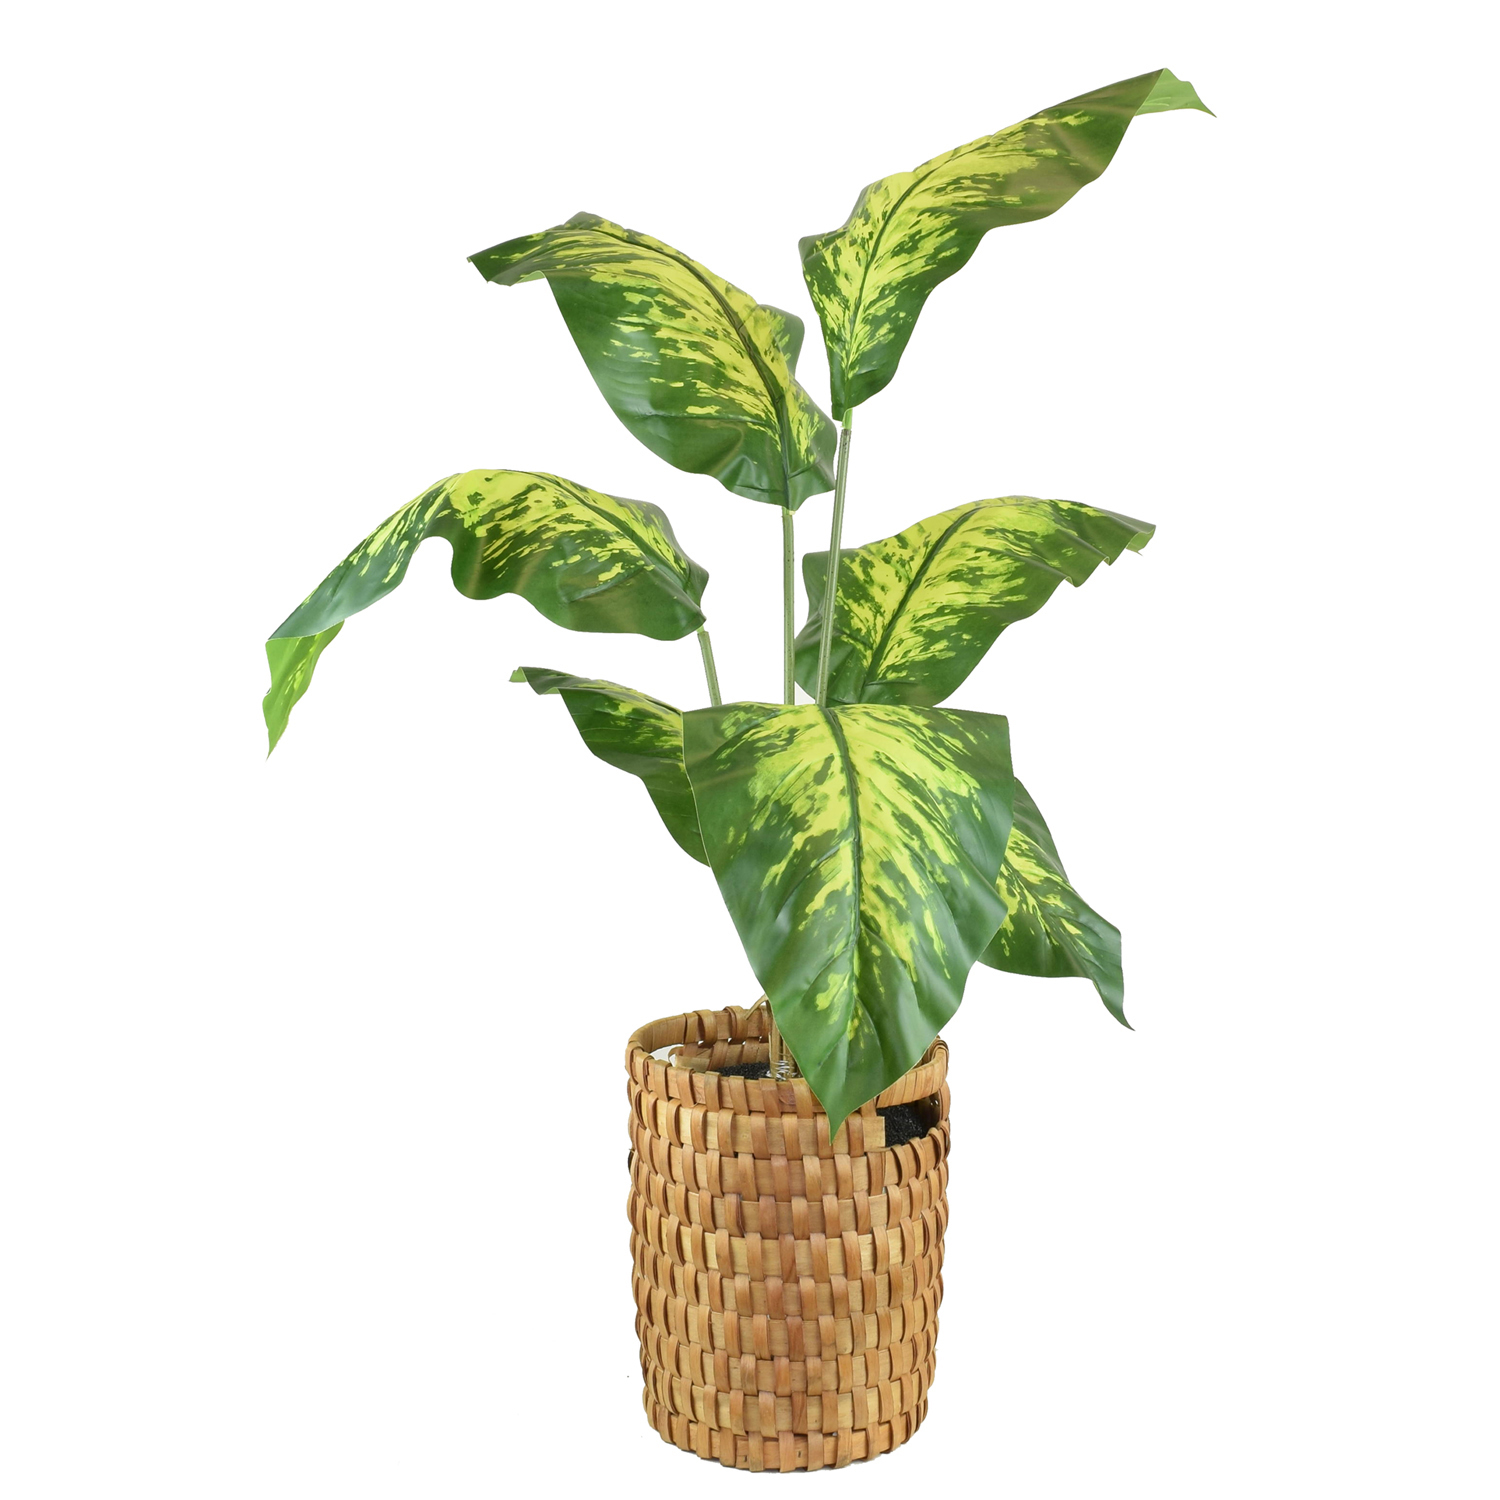 Faux Tropical Dieffenbachia Floor Plant with Handle Basket